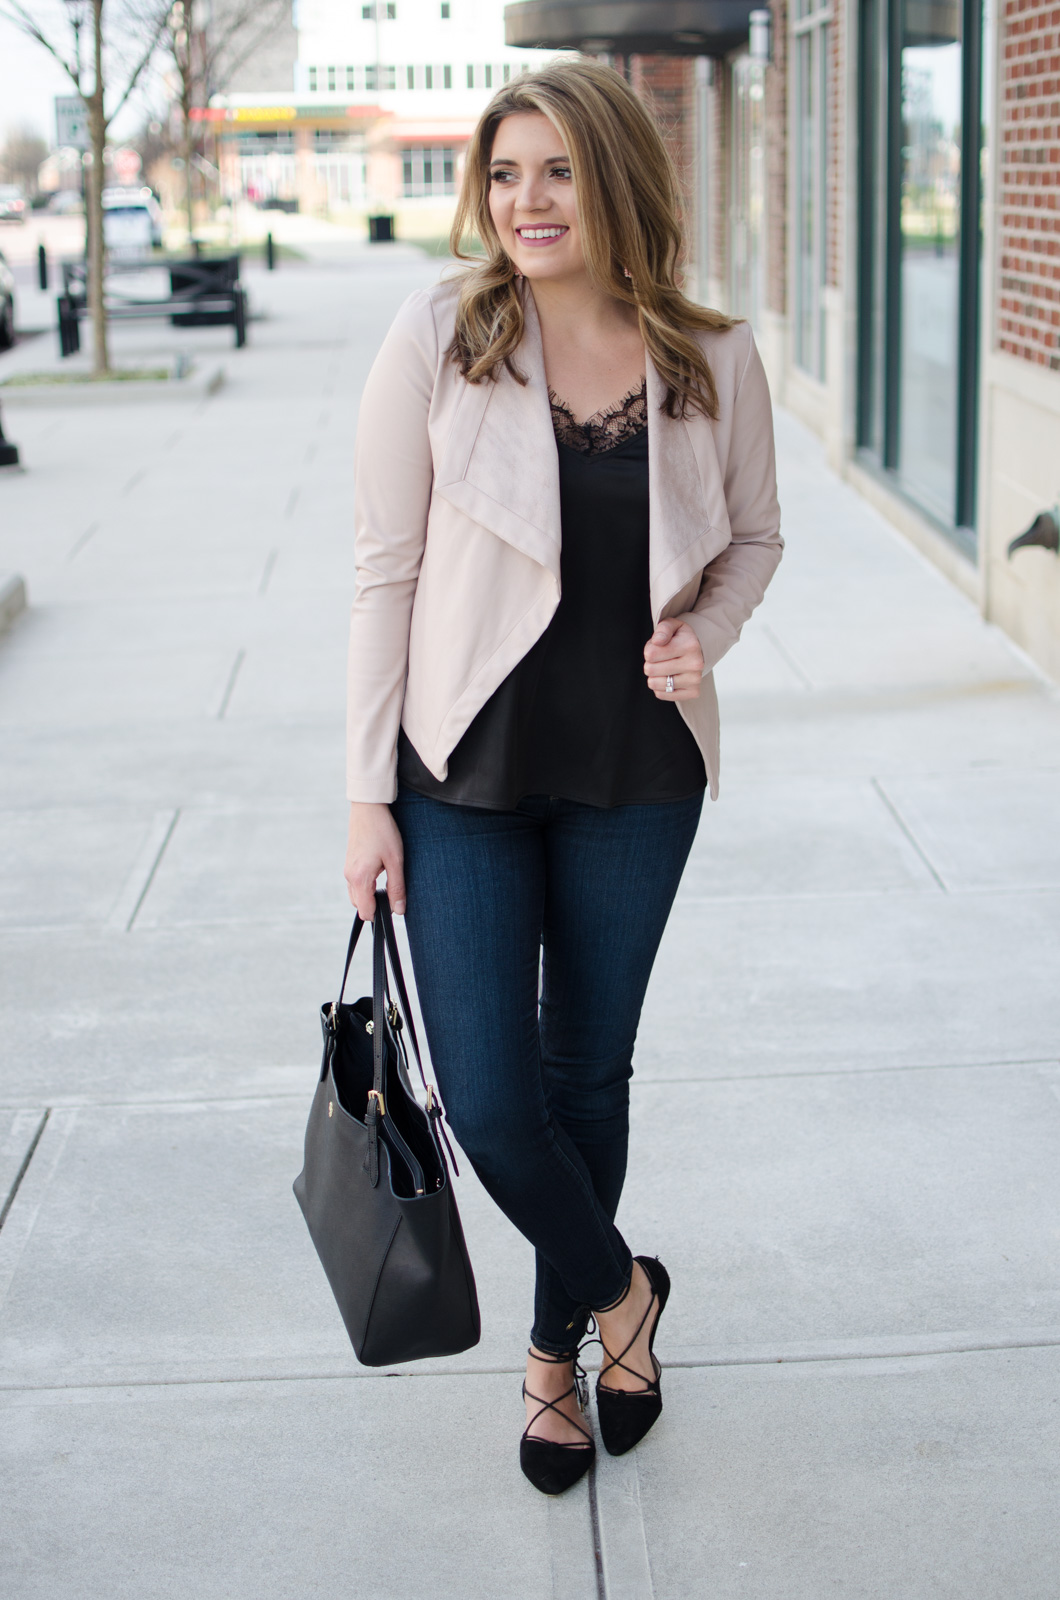 blush pink leather jacket with black lace camisole and black lace-up flats | Click through for more casual outfits or to shop this look! www.bylaurenm.com